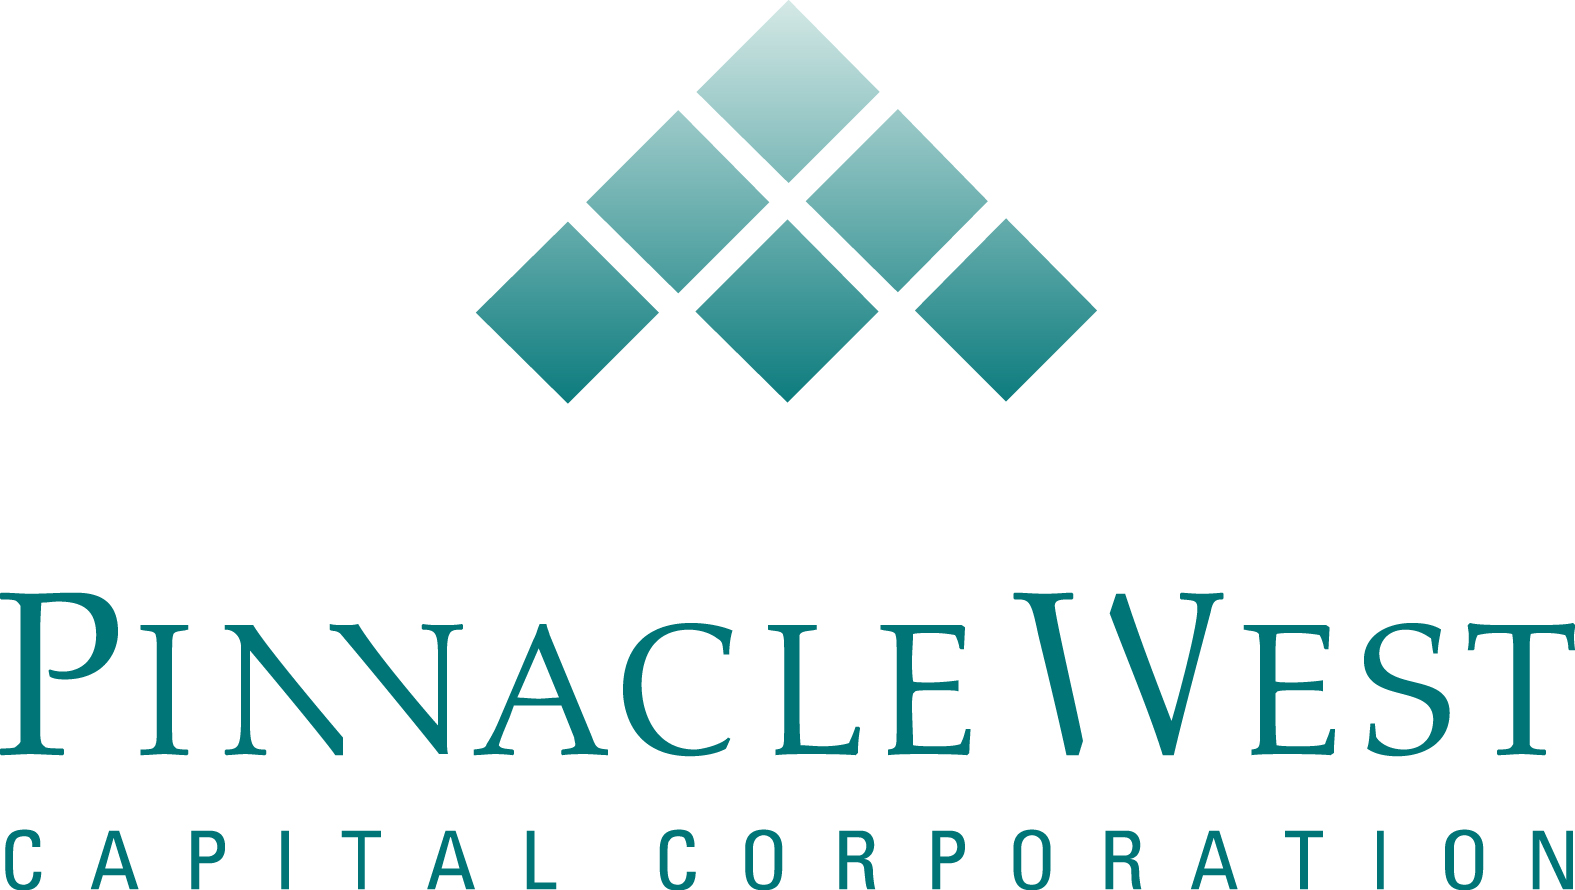 Pinnacle West Capital Co. logo